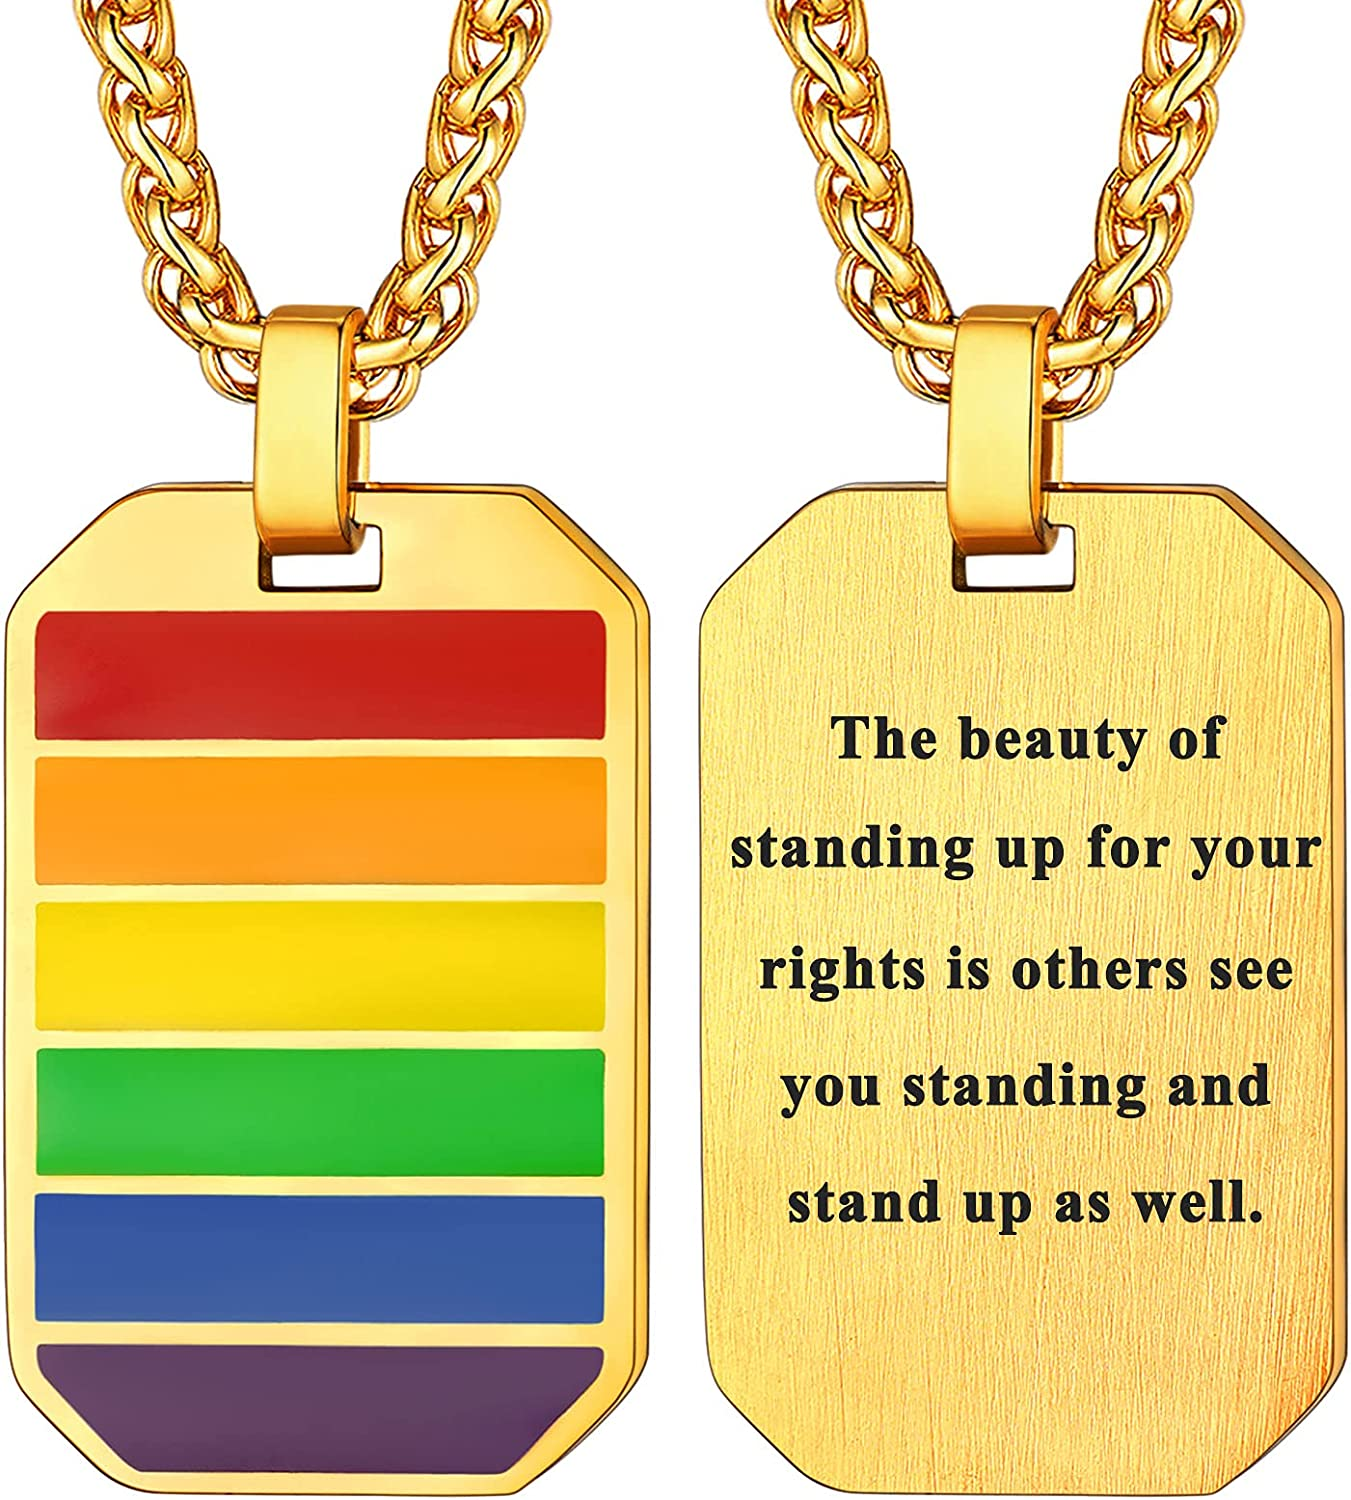 U7 Custom ID Tag Pendant Stainless Steel Engrave Text Quote Mantra Jewelry Military Dog Tags Personalized for Men Women Necklace with 22